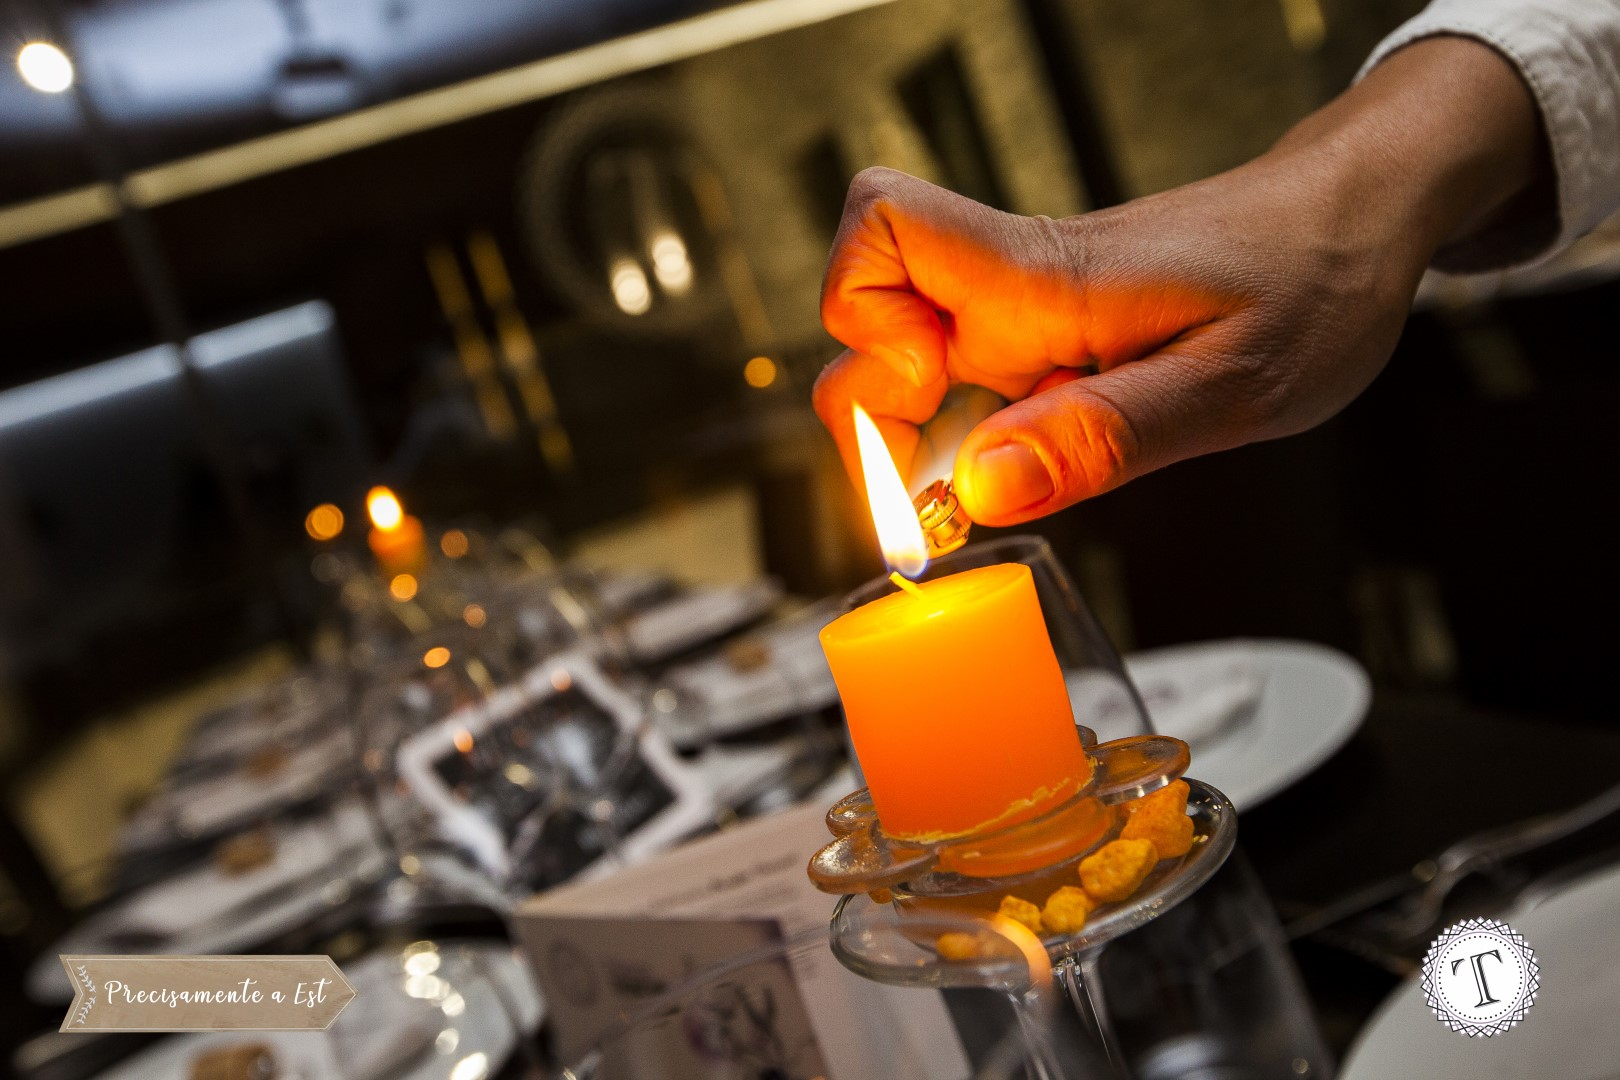 A candle is lit at dinner time at Palazzo Tronconi.